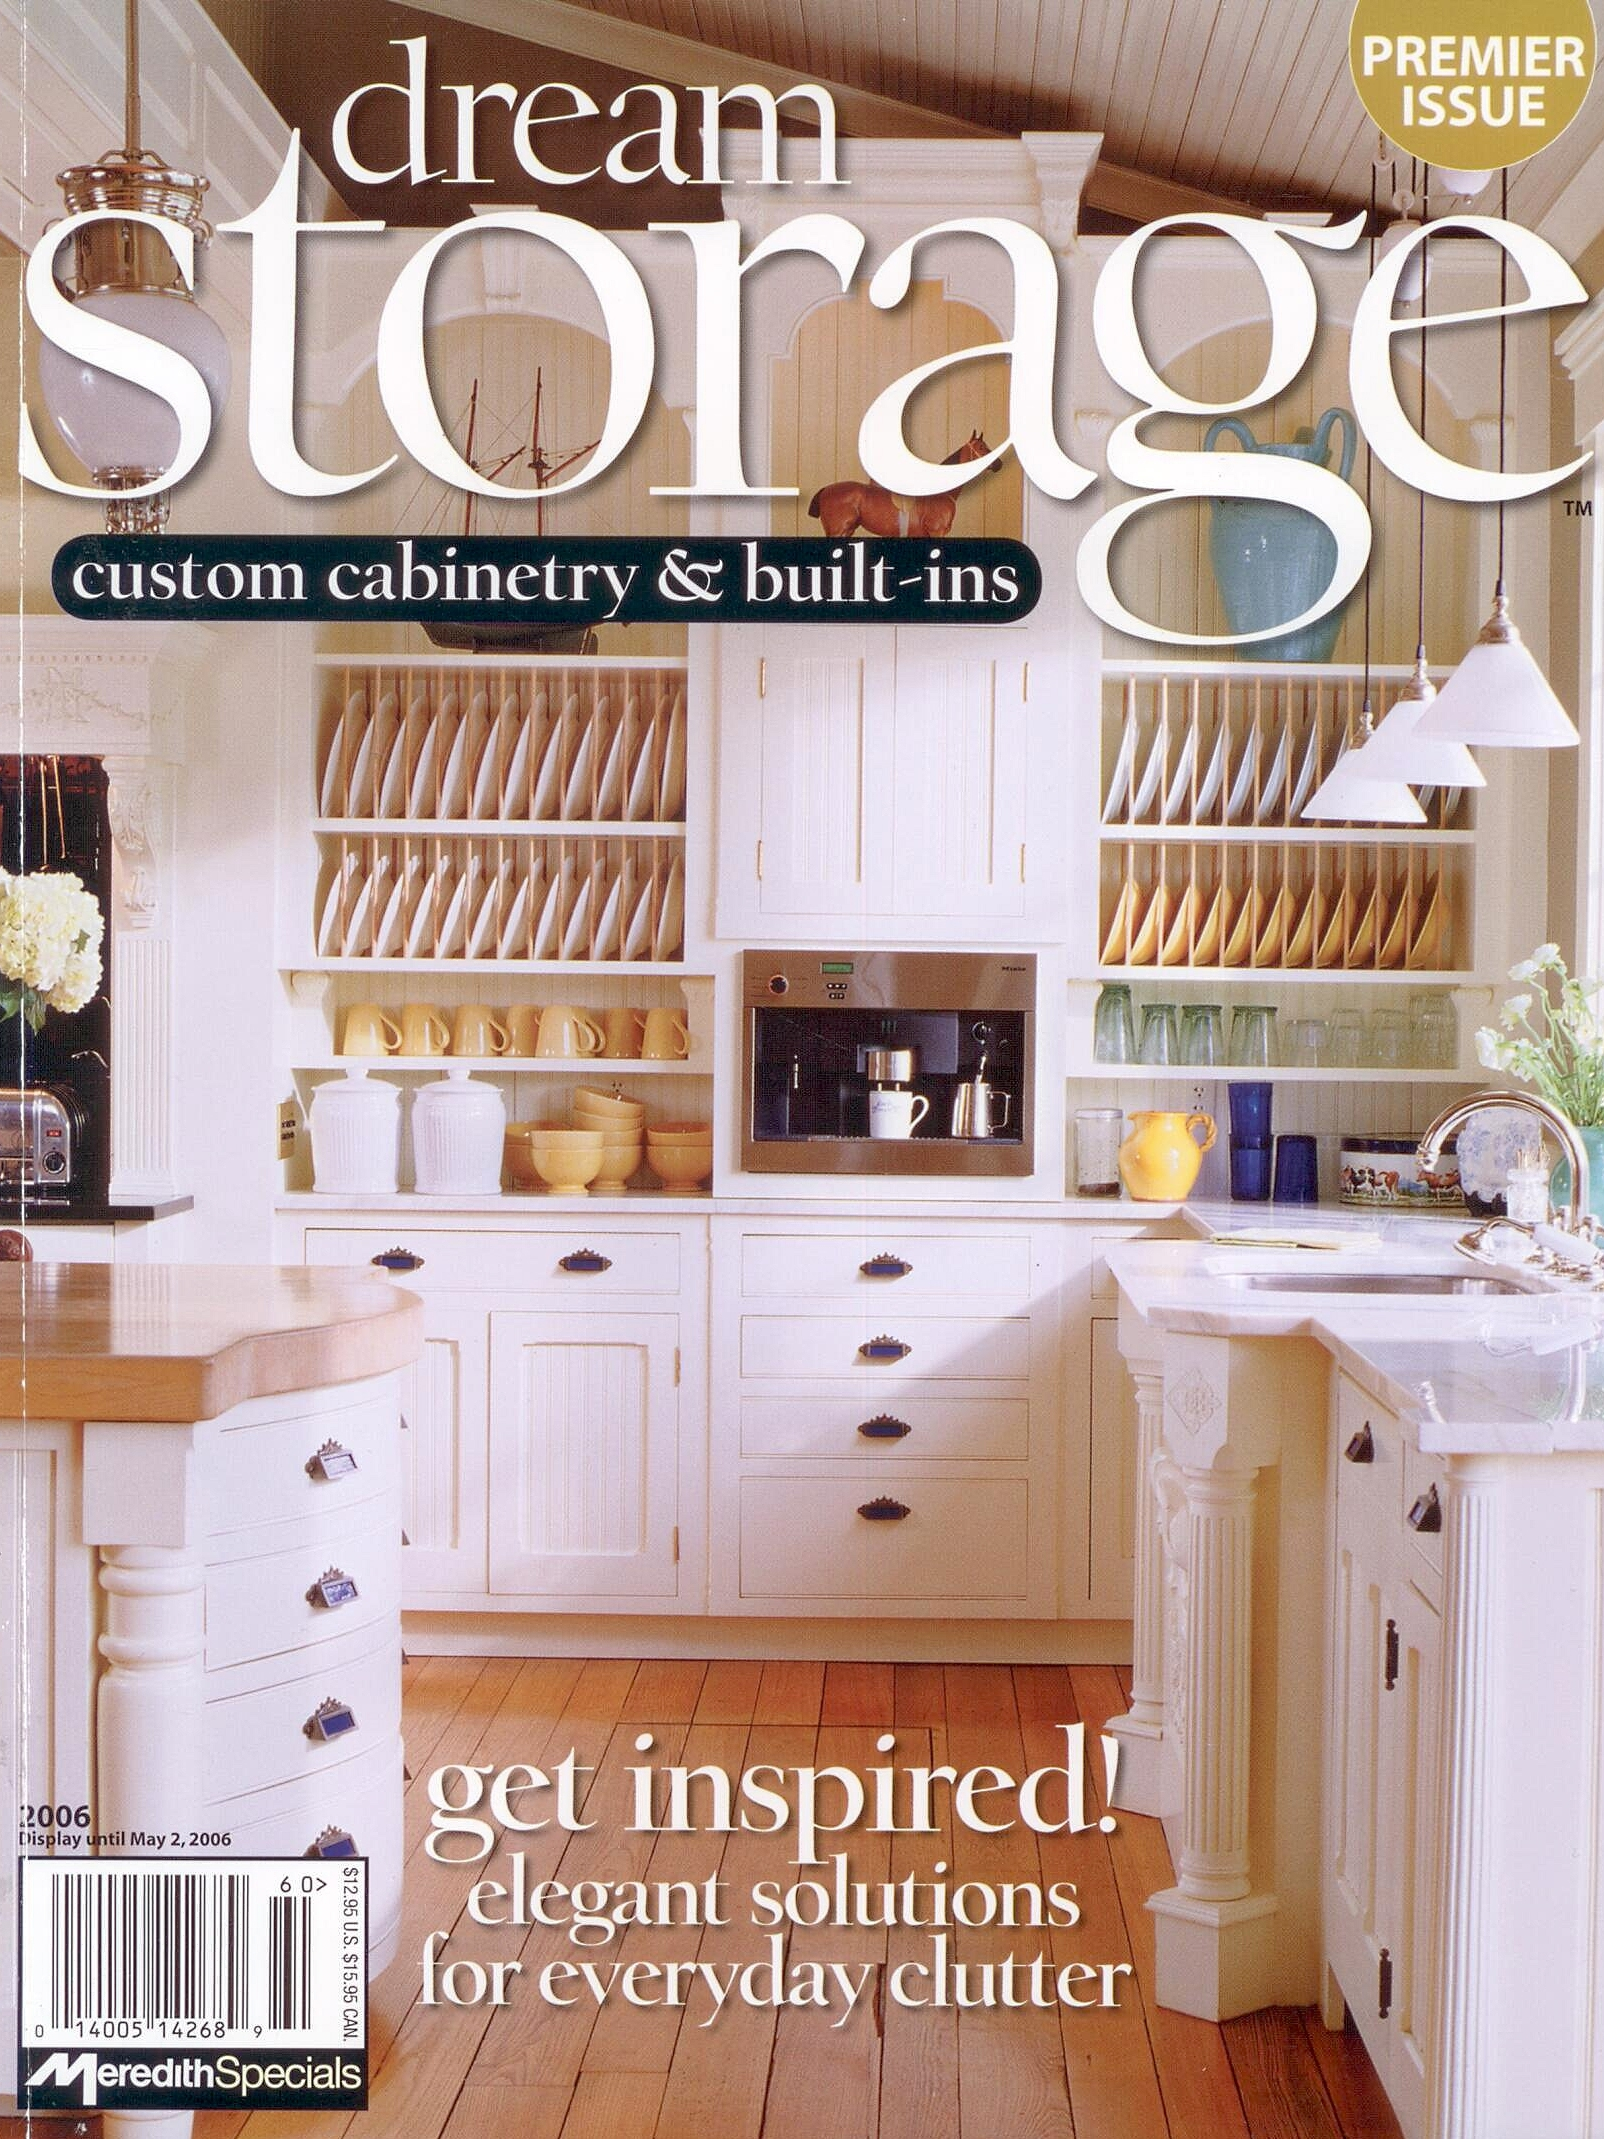 Dream Storage - Custom Cabinetry & Built Ins 2006 - Cover.jpg